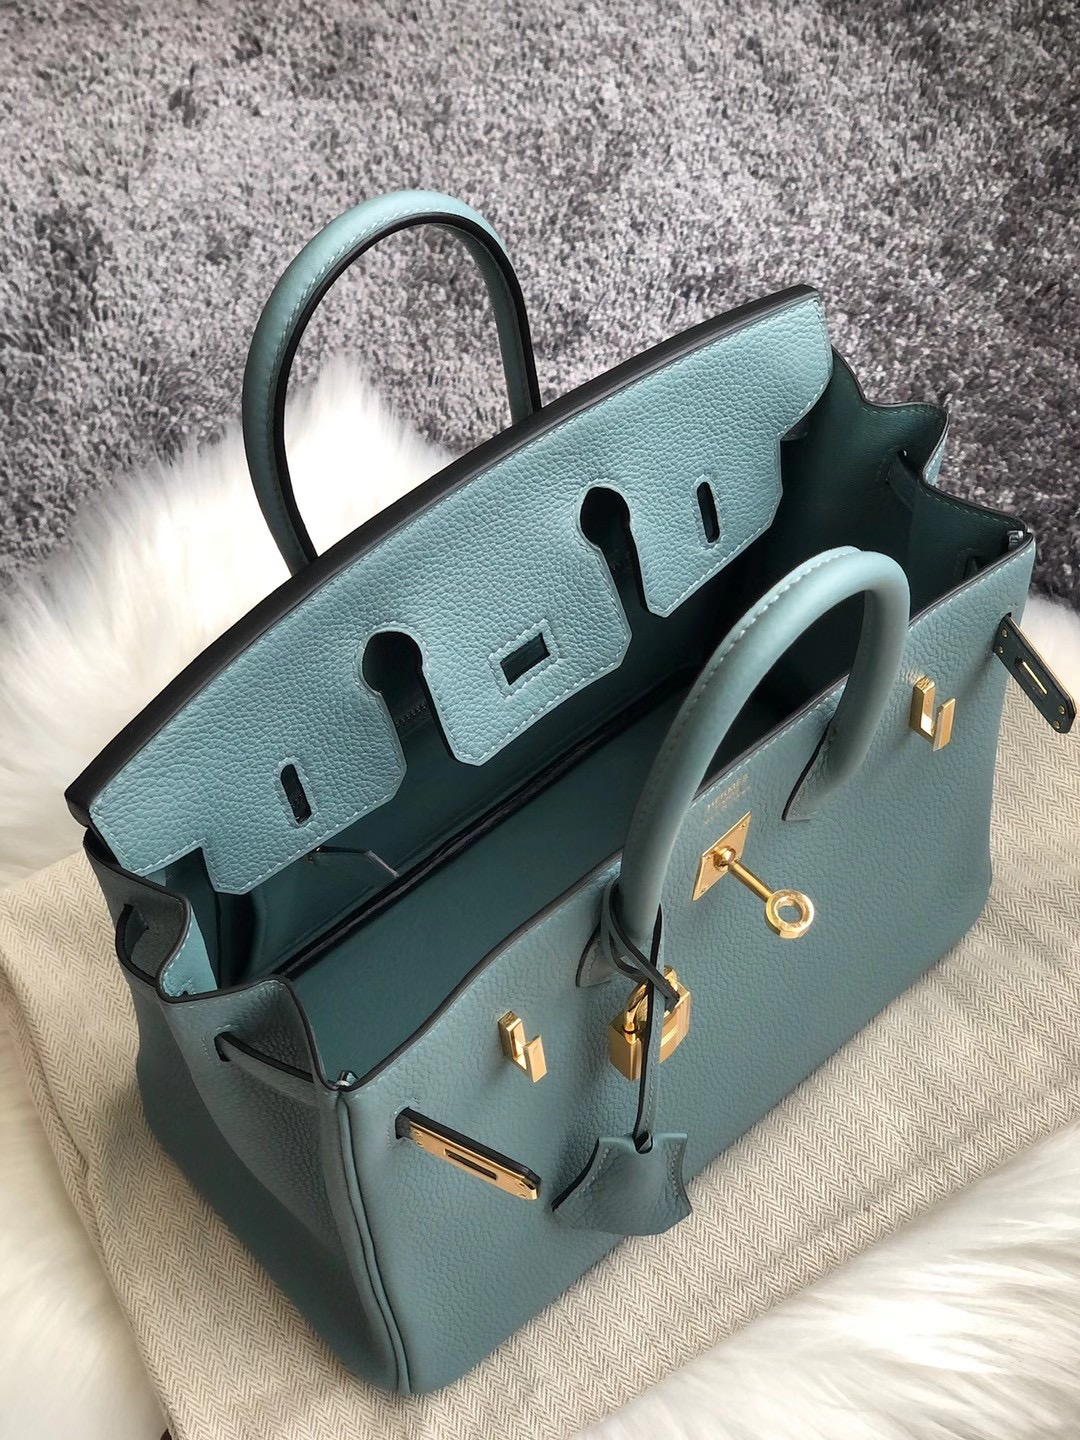 Sai Kung District, Hong Kong Hermes Birkin 25cm Togo 7G Ciel 天青色